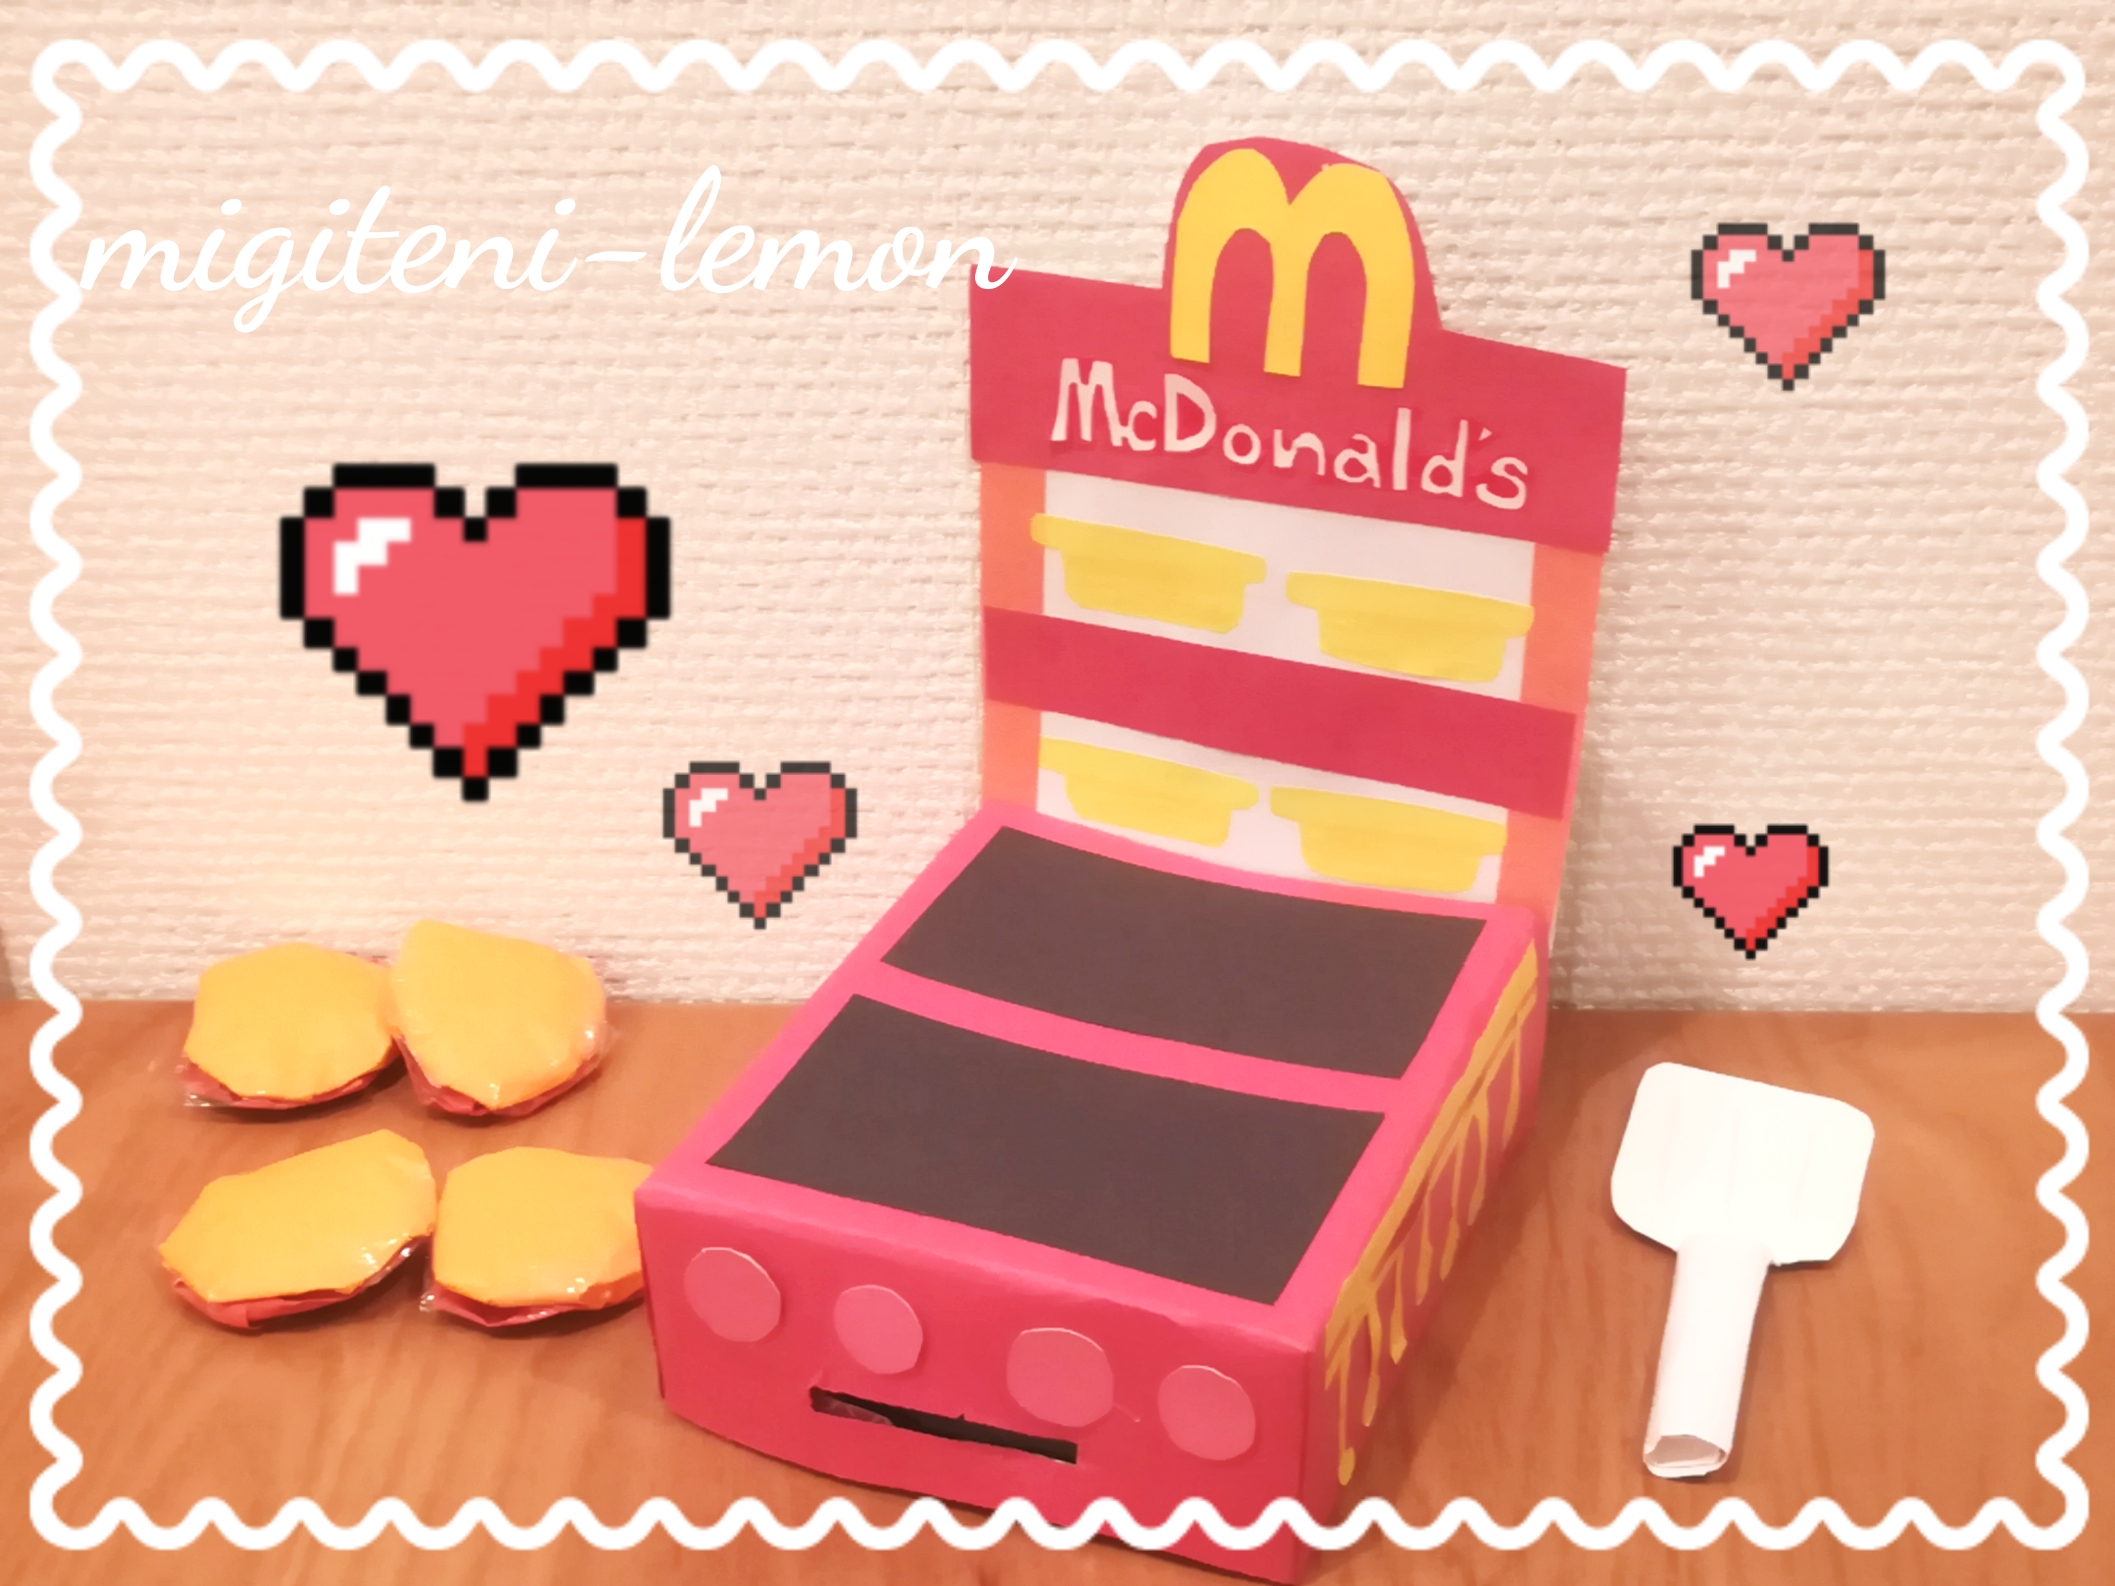 narikiri-mcdonalds-happyset-girl